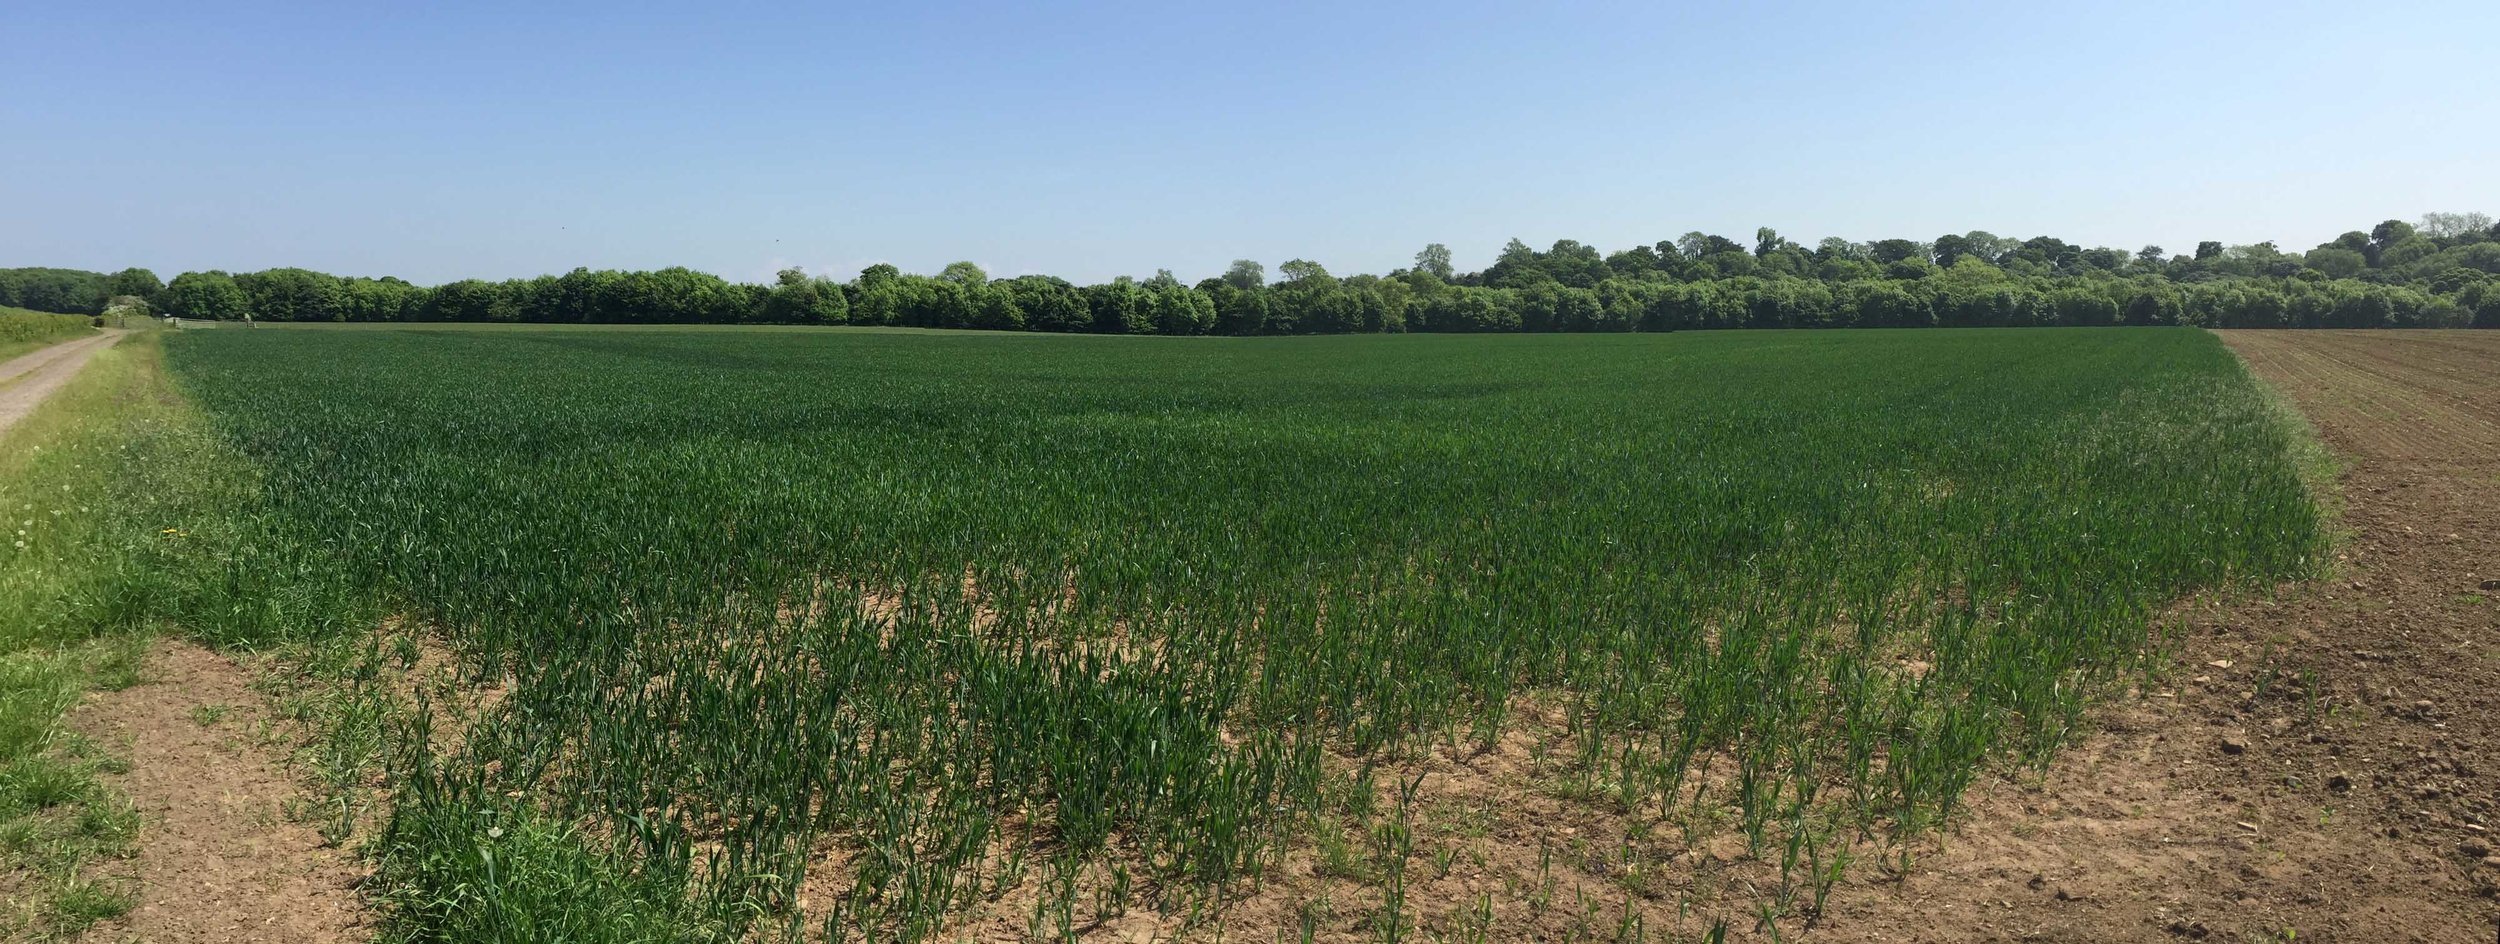 Initially assessing a crop condition can be both difficult to ascertain and time-consuming from the ground...